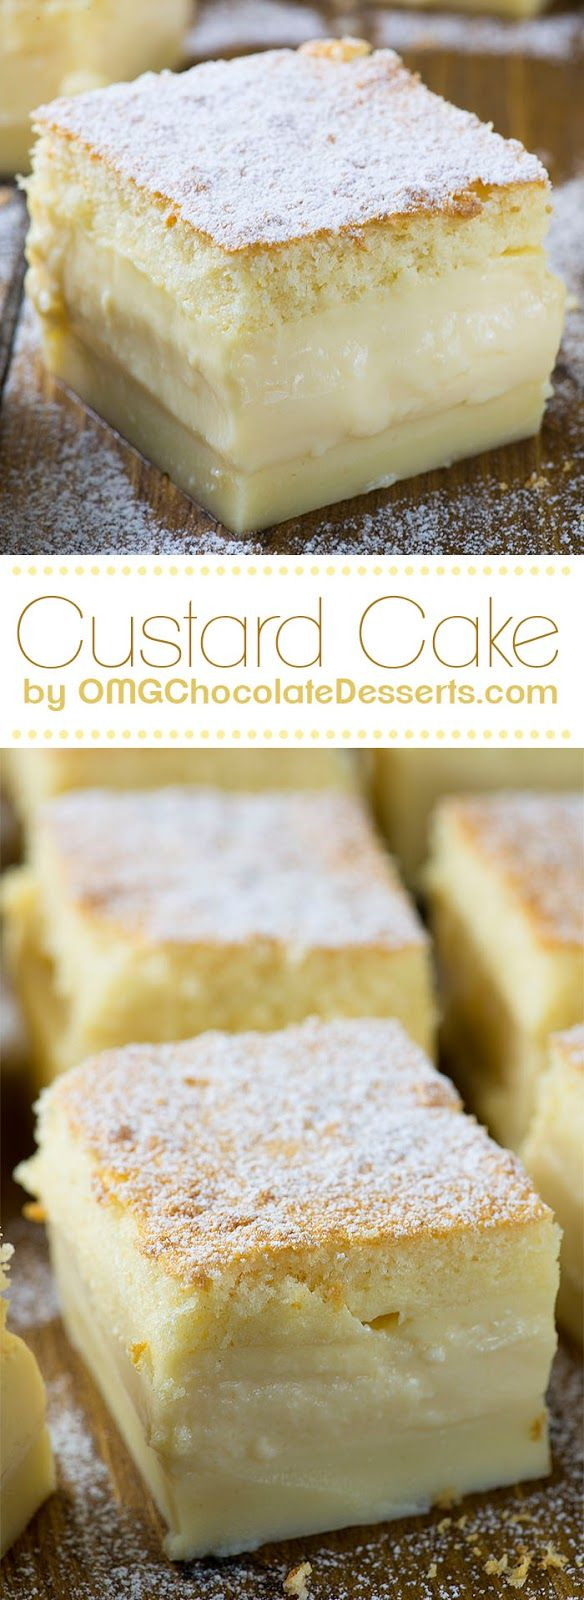 I made a gluten-free version of this tonight and I learned some important things. It's still cooling, but I sampled some and it worke...